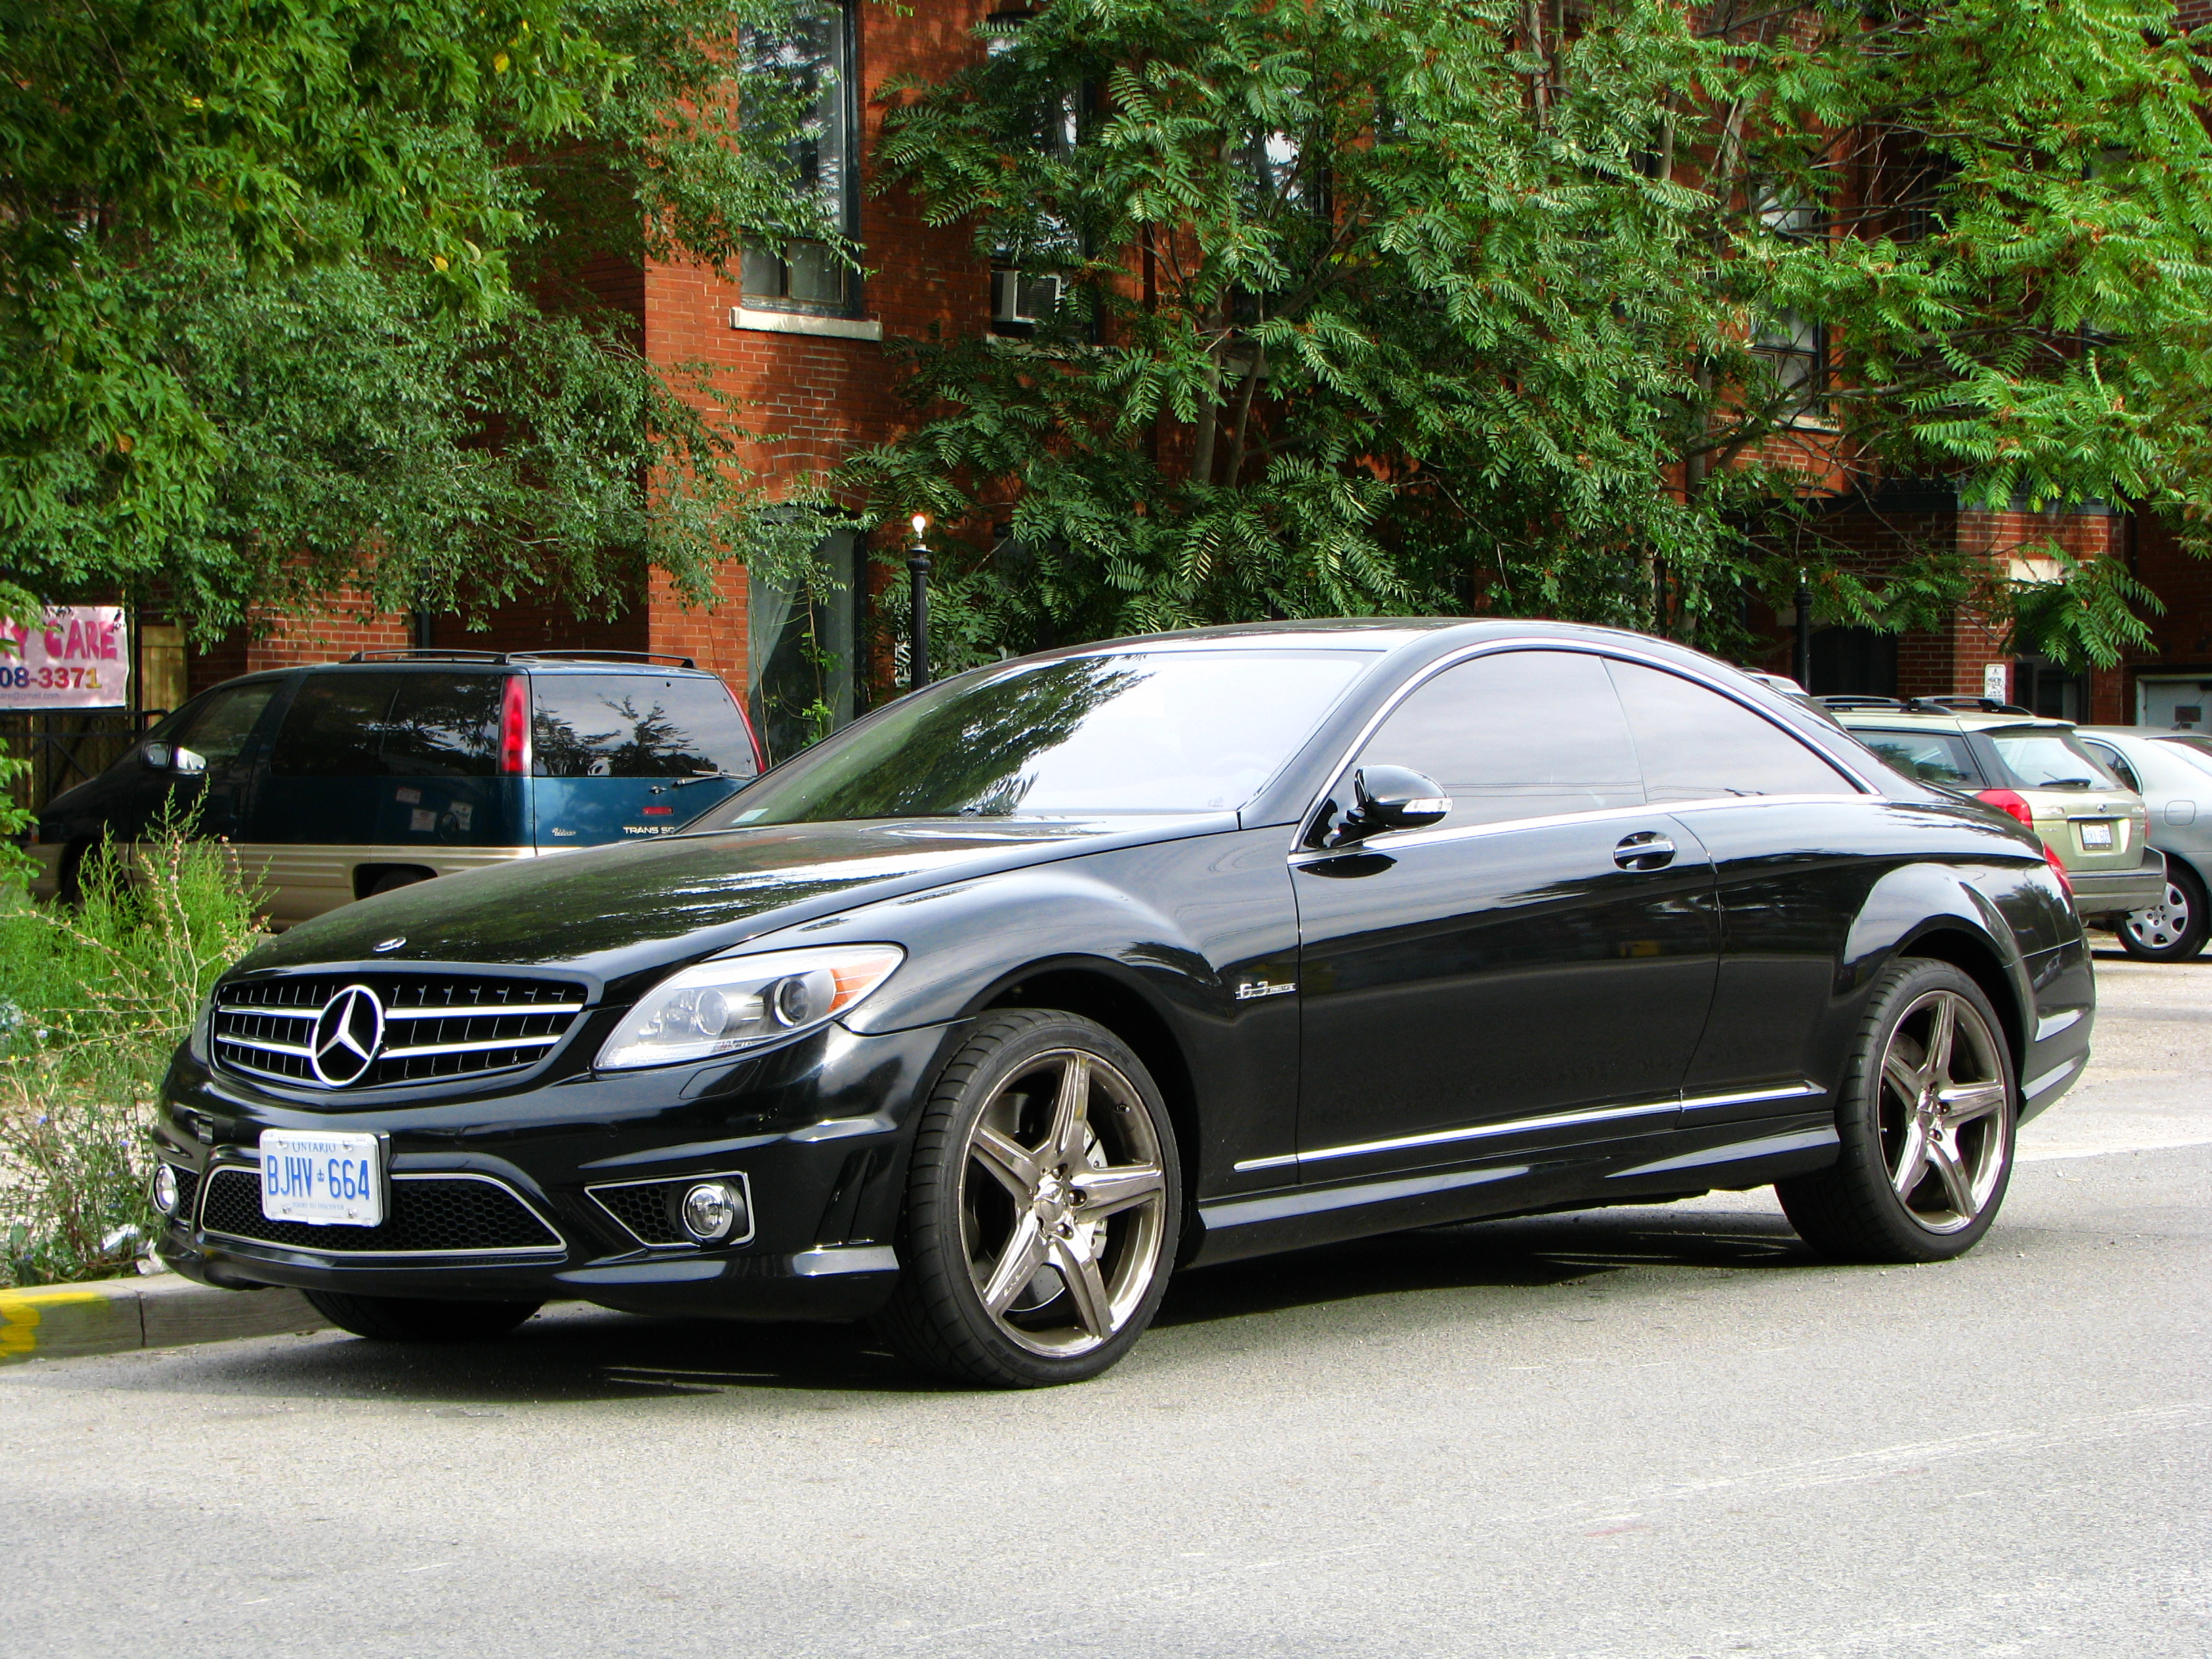 file mercedes cl63 wikimedia commons. Black Bedroom Furniture Sets. Home Design Ideas